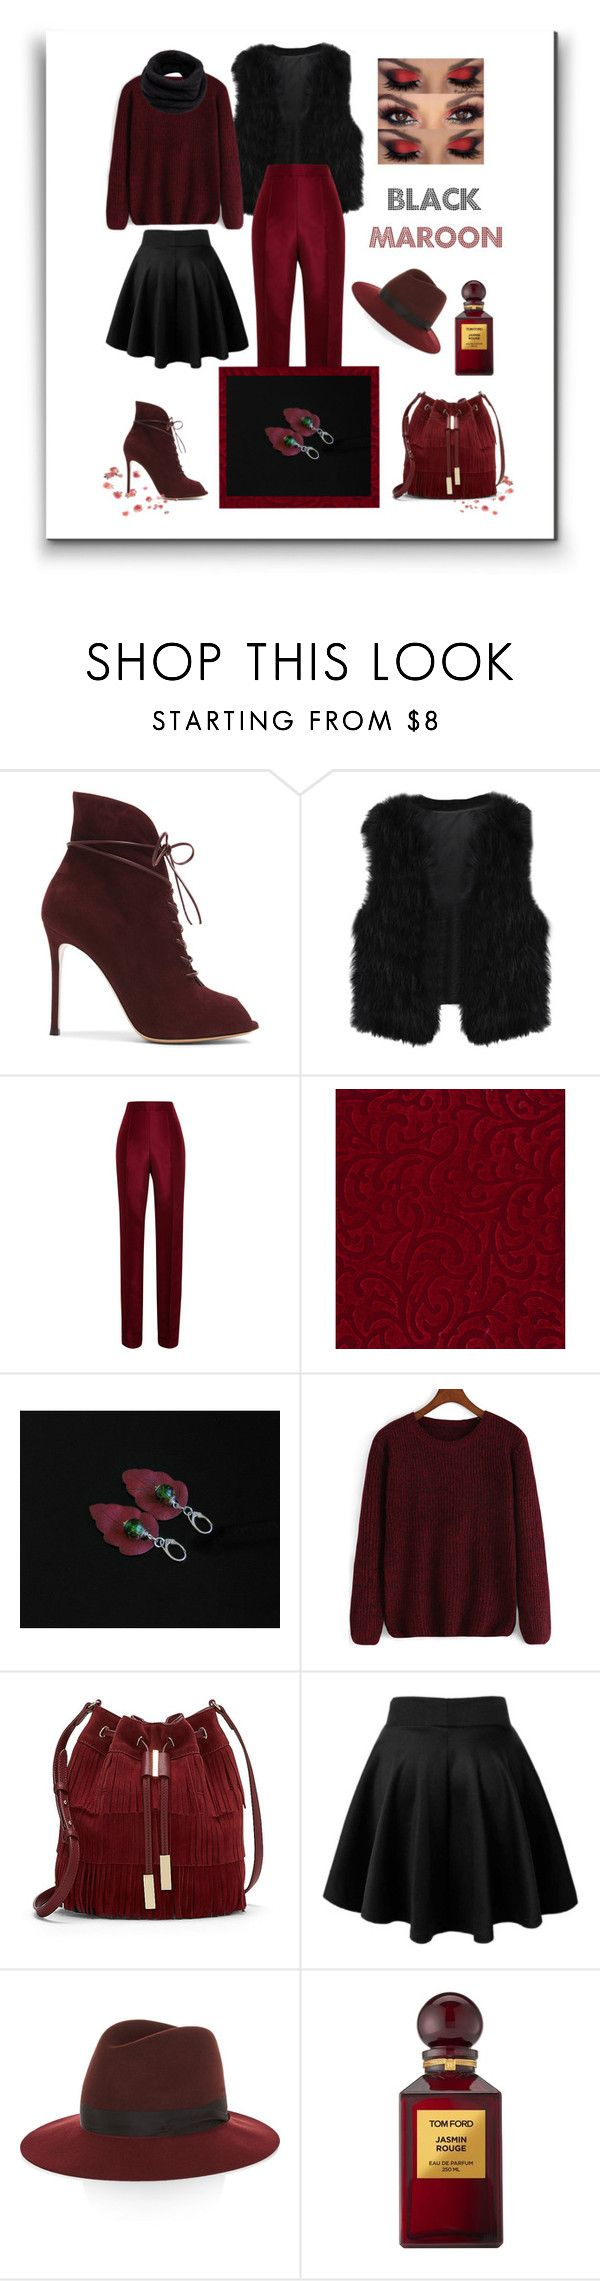 """""""Black & Maroon"""" by styledonna on Polyvore featuring moda, Gianvito Rossi, Rosie Assoulin, Vince Camuto, rag & bone, Tom Ford, Helmut Lang, trending, maroon i outfits"""